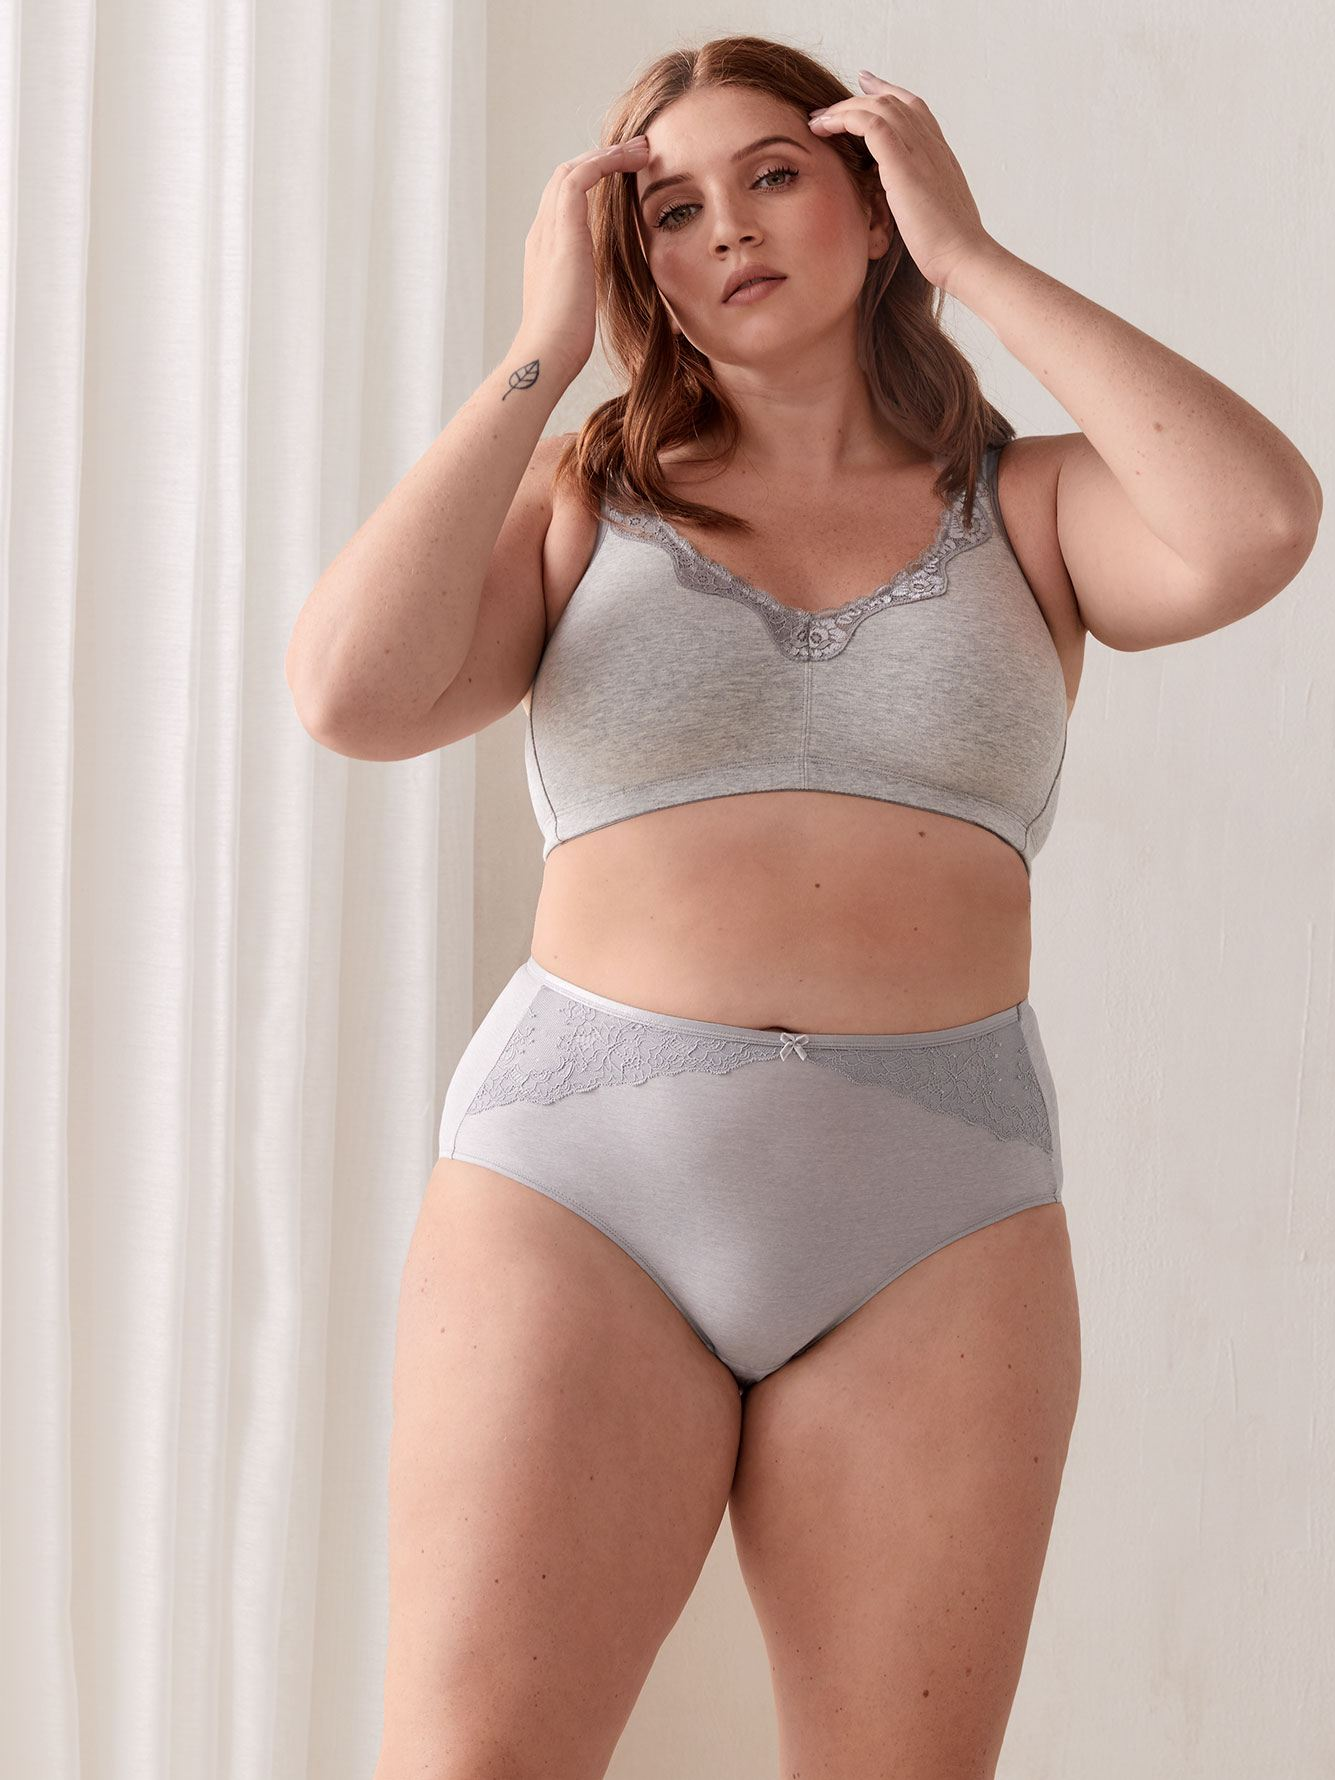 Heathered Wirefree Bra with Lace, G & H Cups - ti Voglio